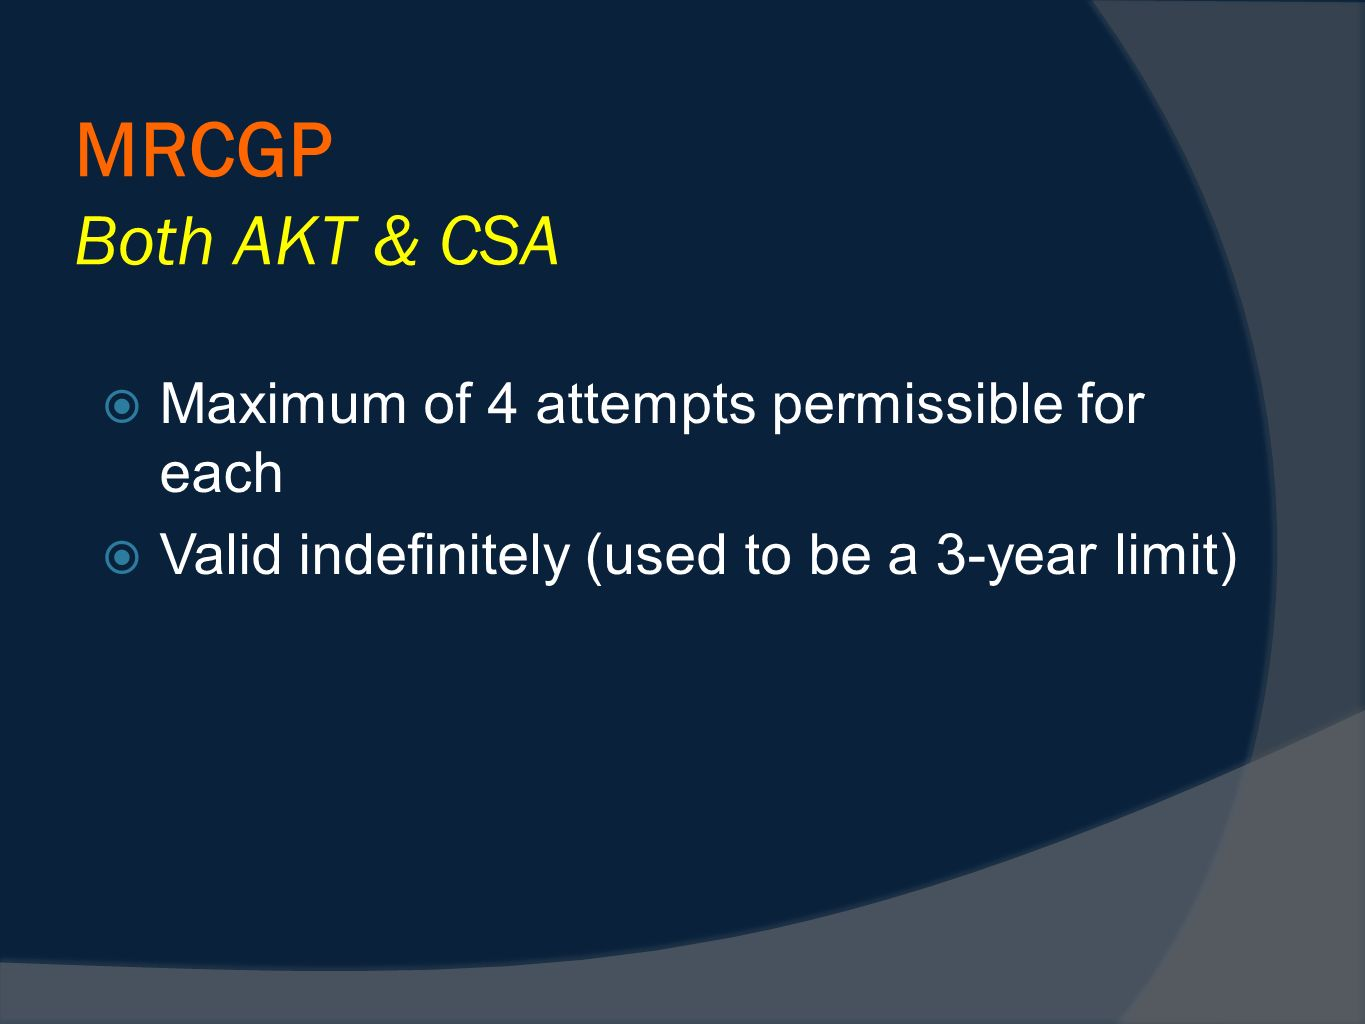 MRCGP Both AKT & CSA Maximum of 4 attempts permissible for each Valid indefinitely (used to be a 3-year limit)